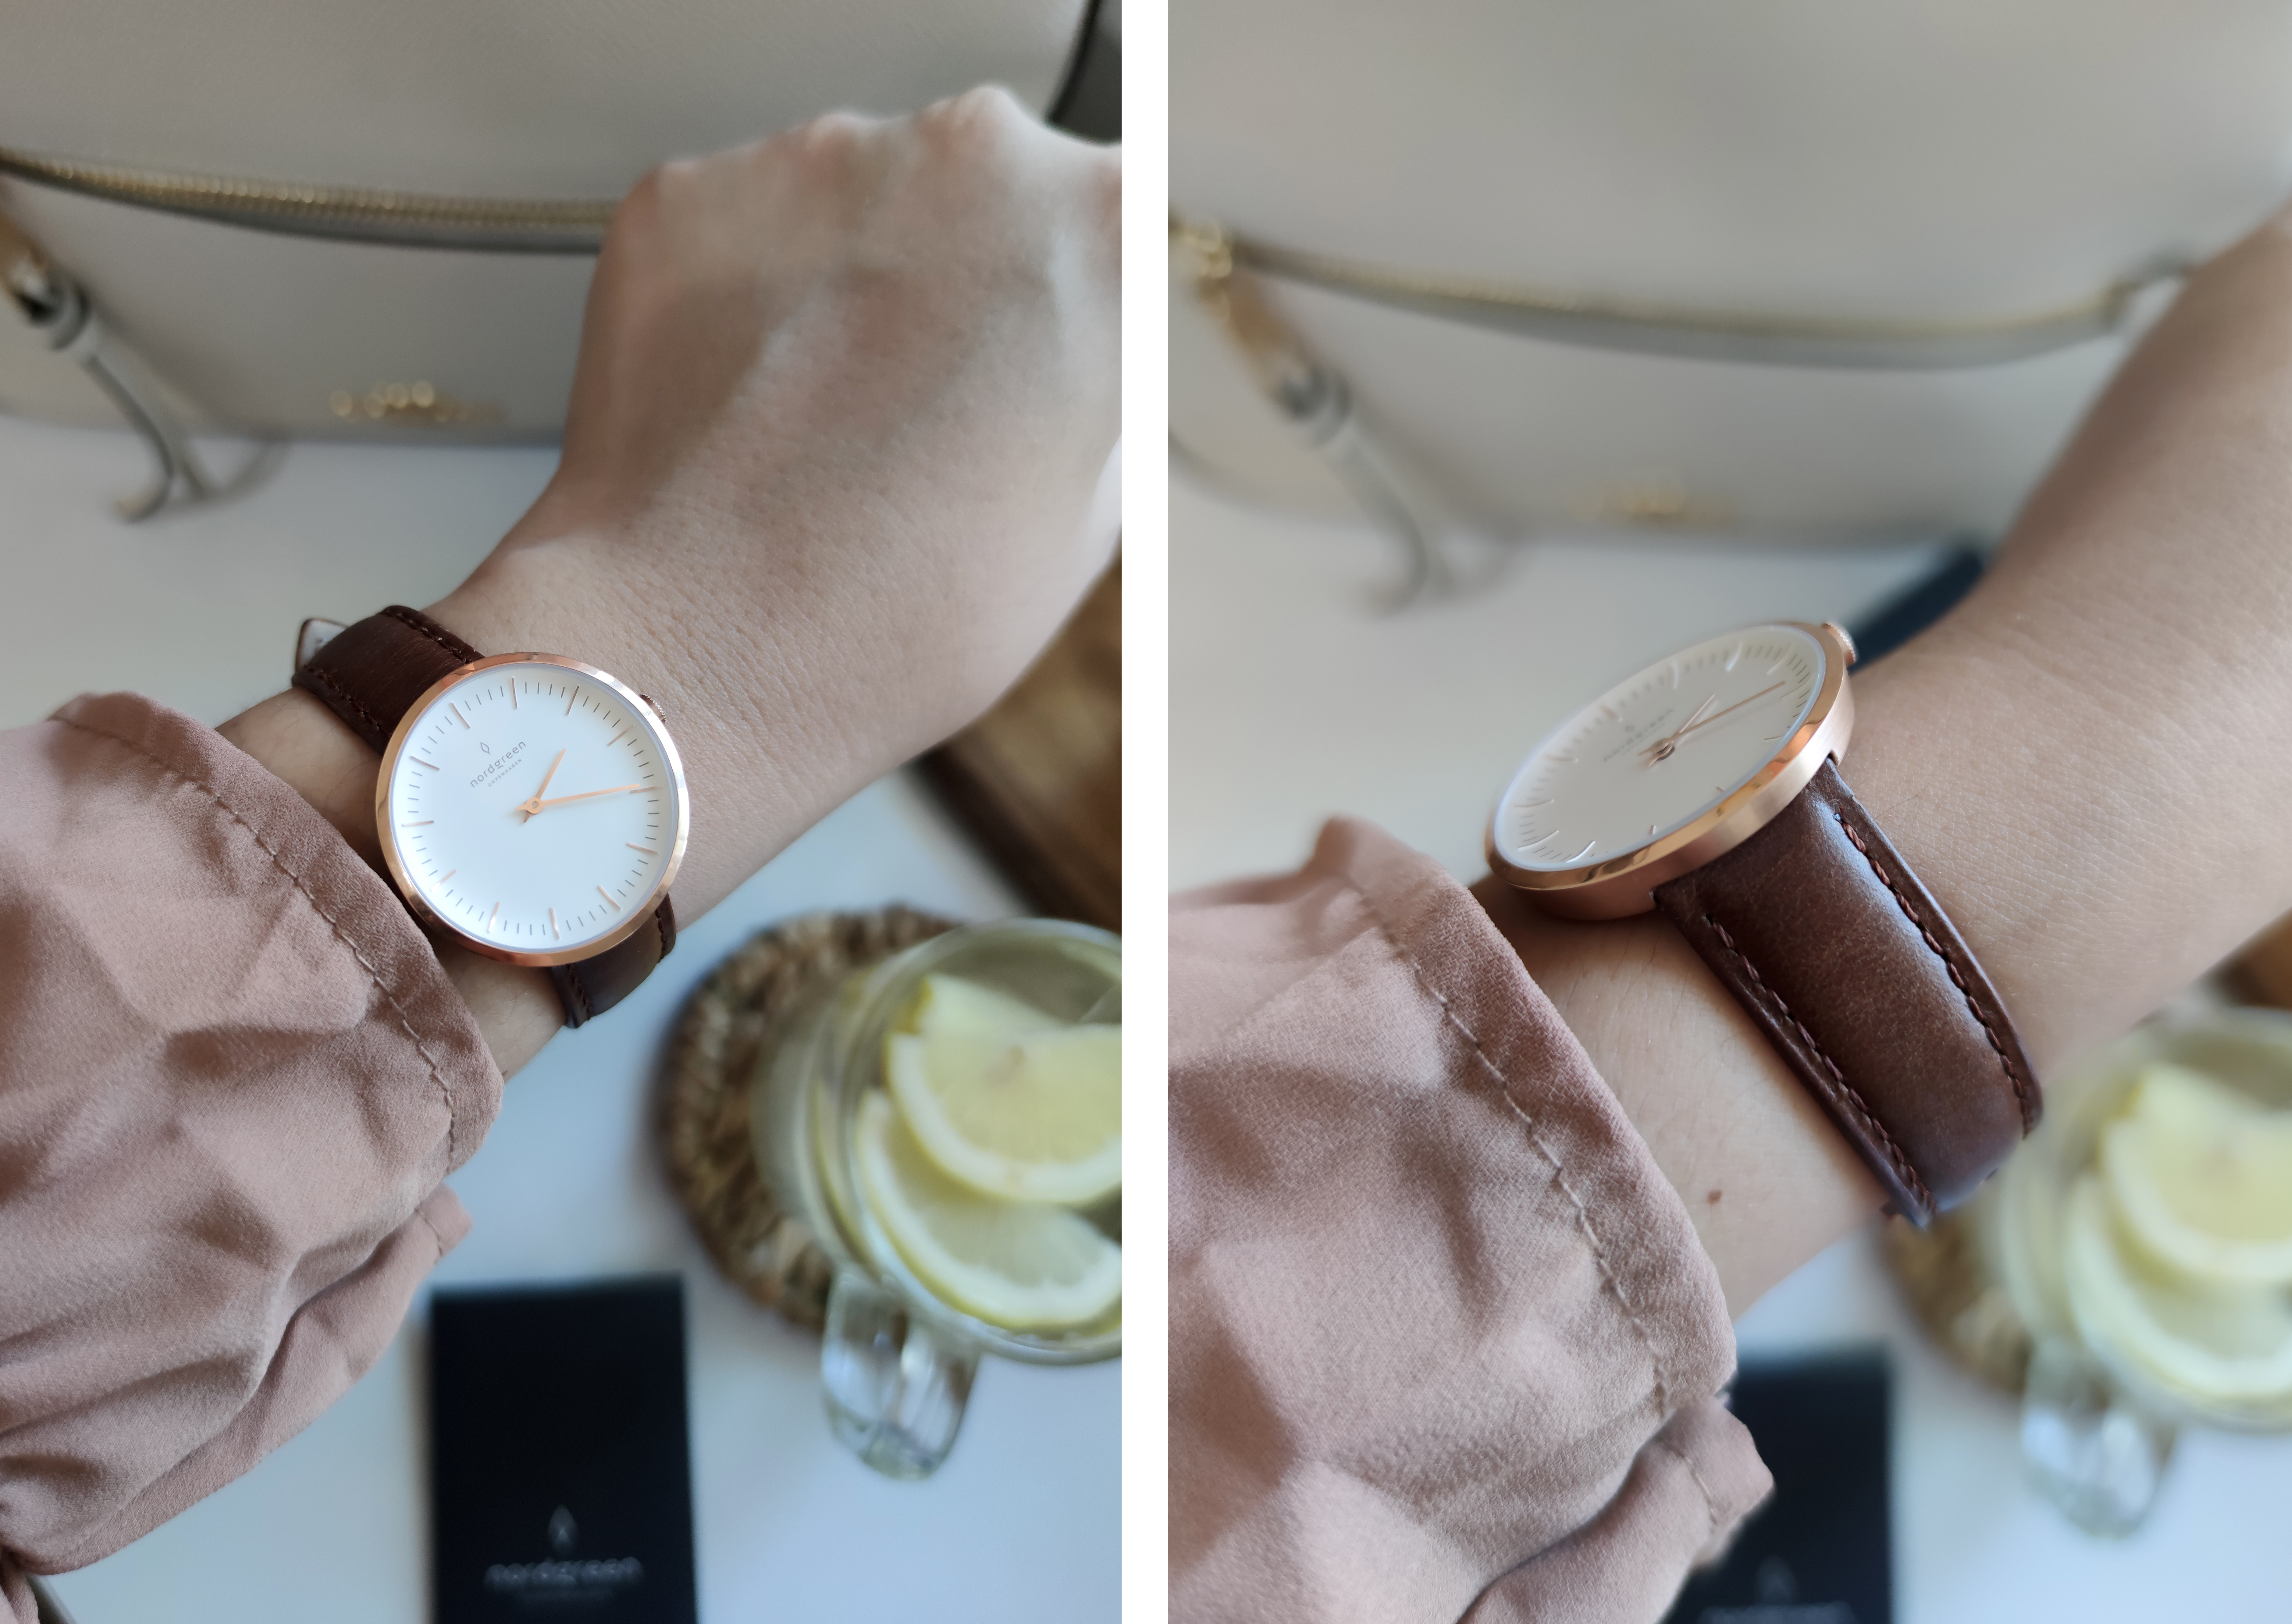 NORDGREEN ROSE GOLD INFINITY WATCH IN BROWN LEATHER DESIGN INSPIRED BY NATURE